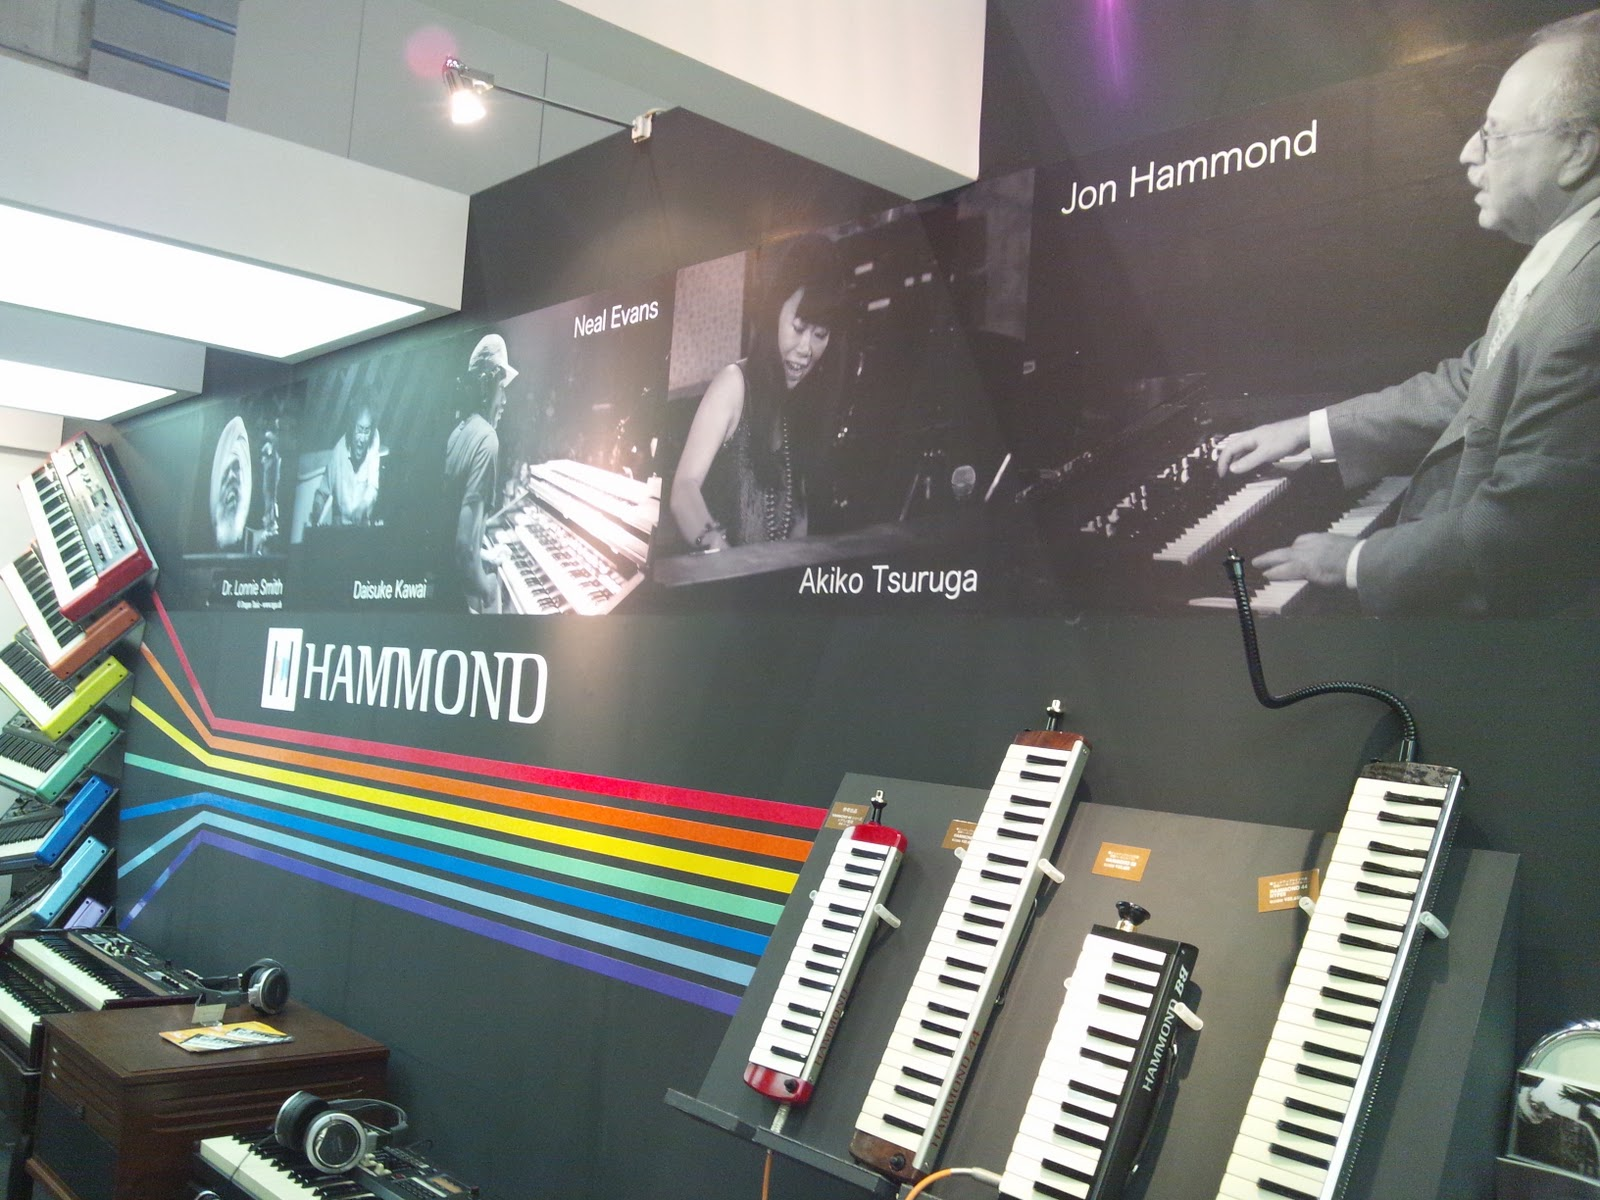 Breaking News from Japan Musical Instruments Trade Fair